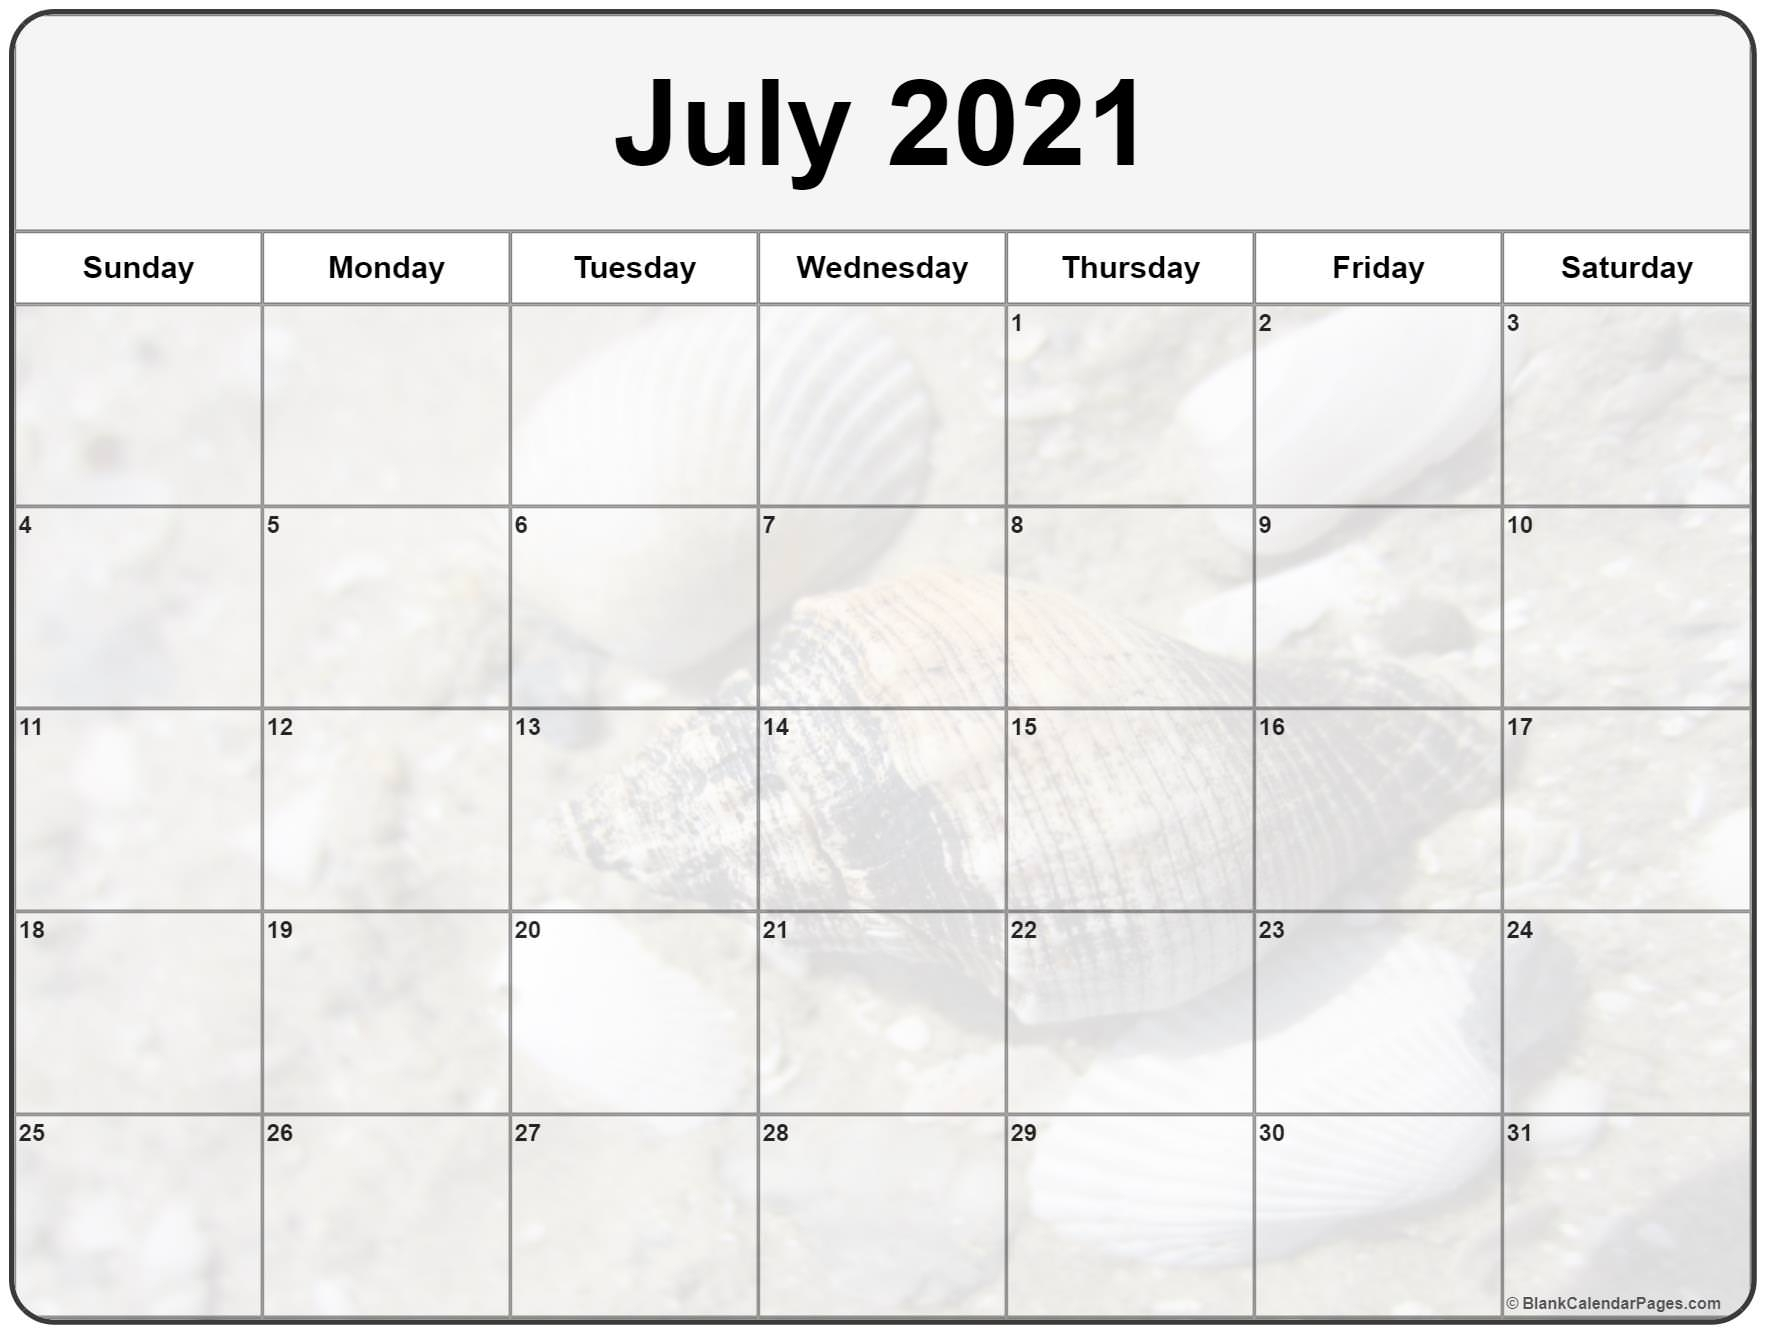 Collection Of July 2021 Photo Calendars With Image Filters.